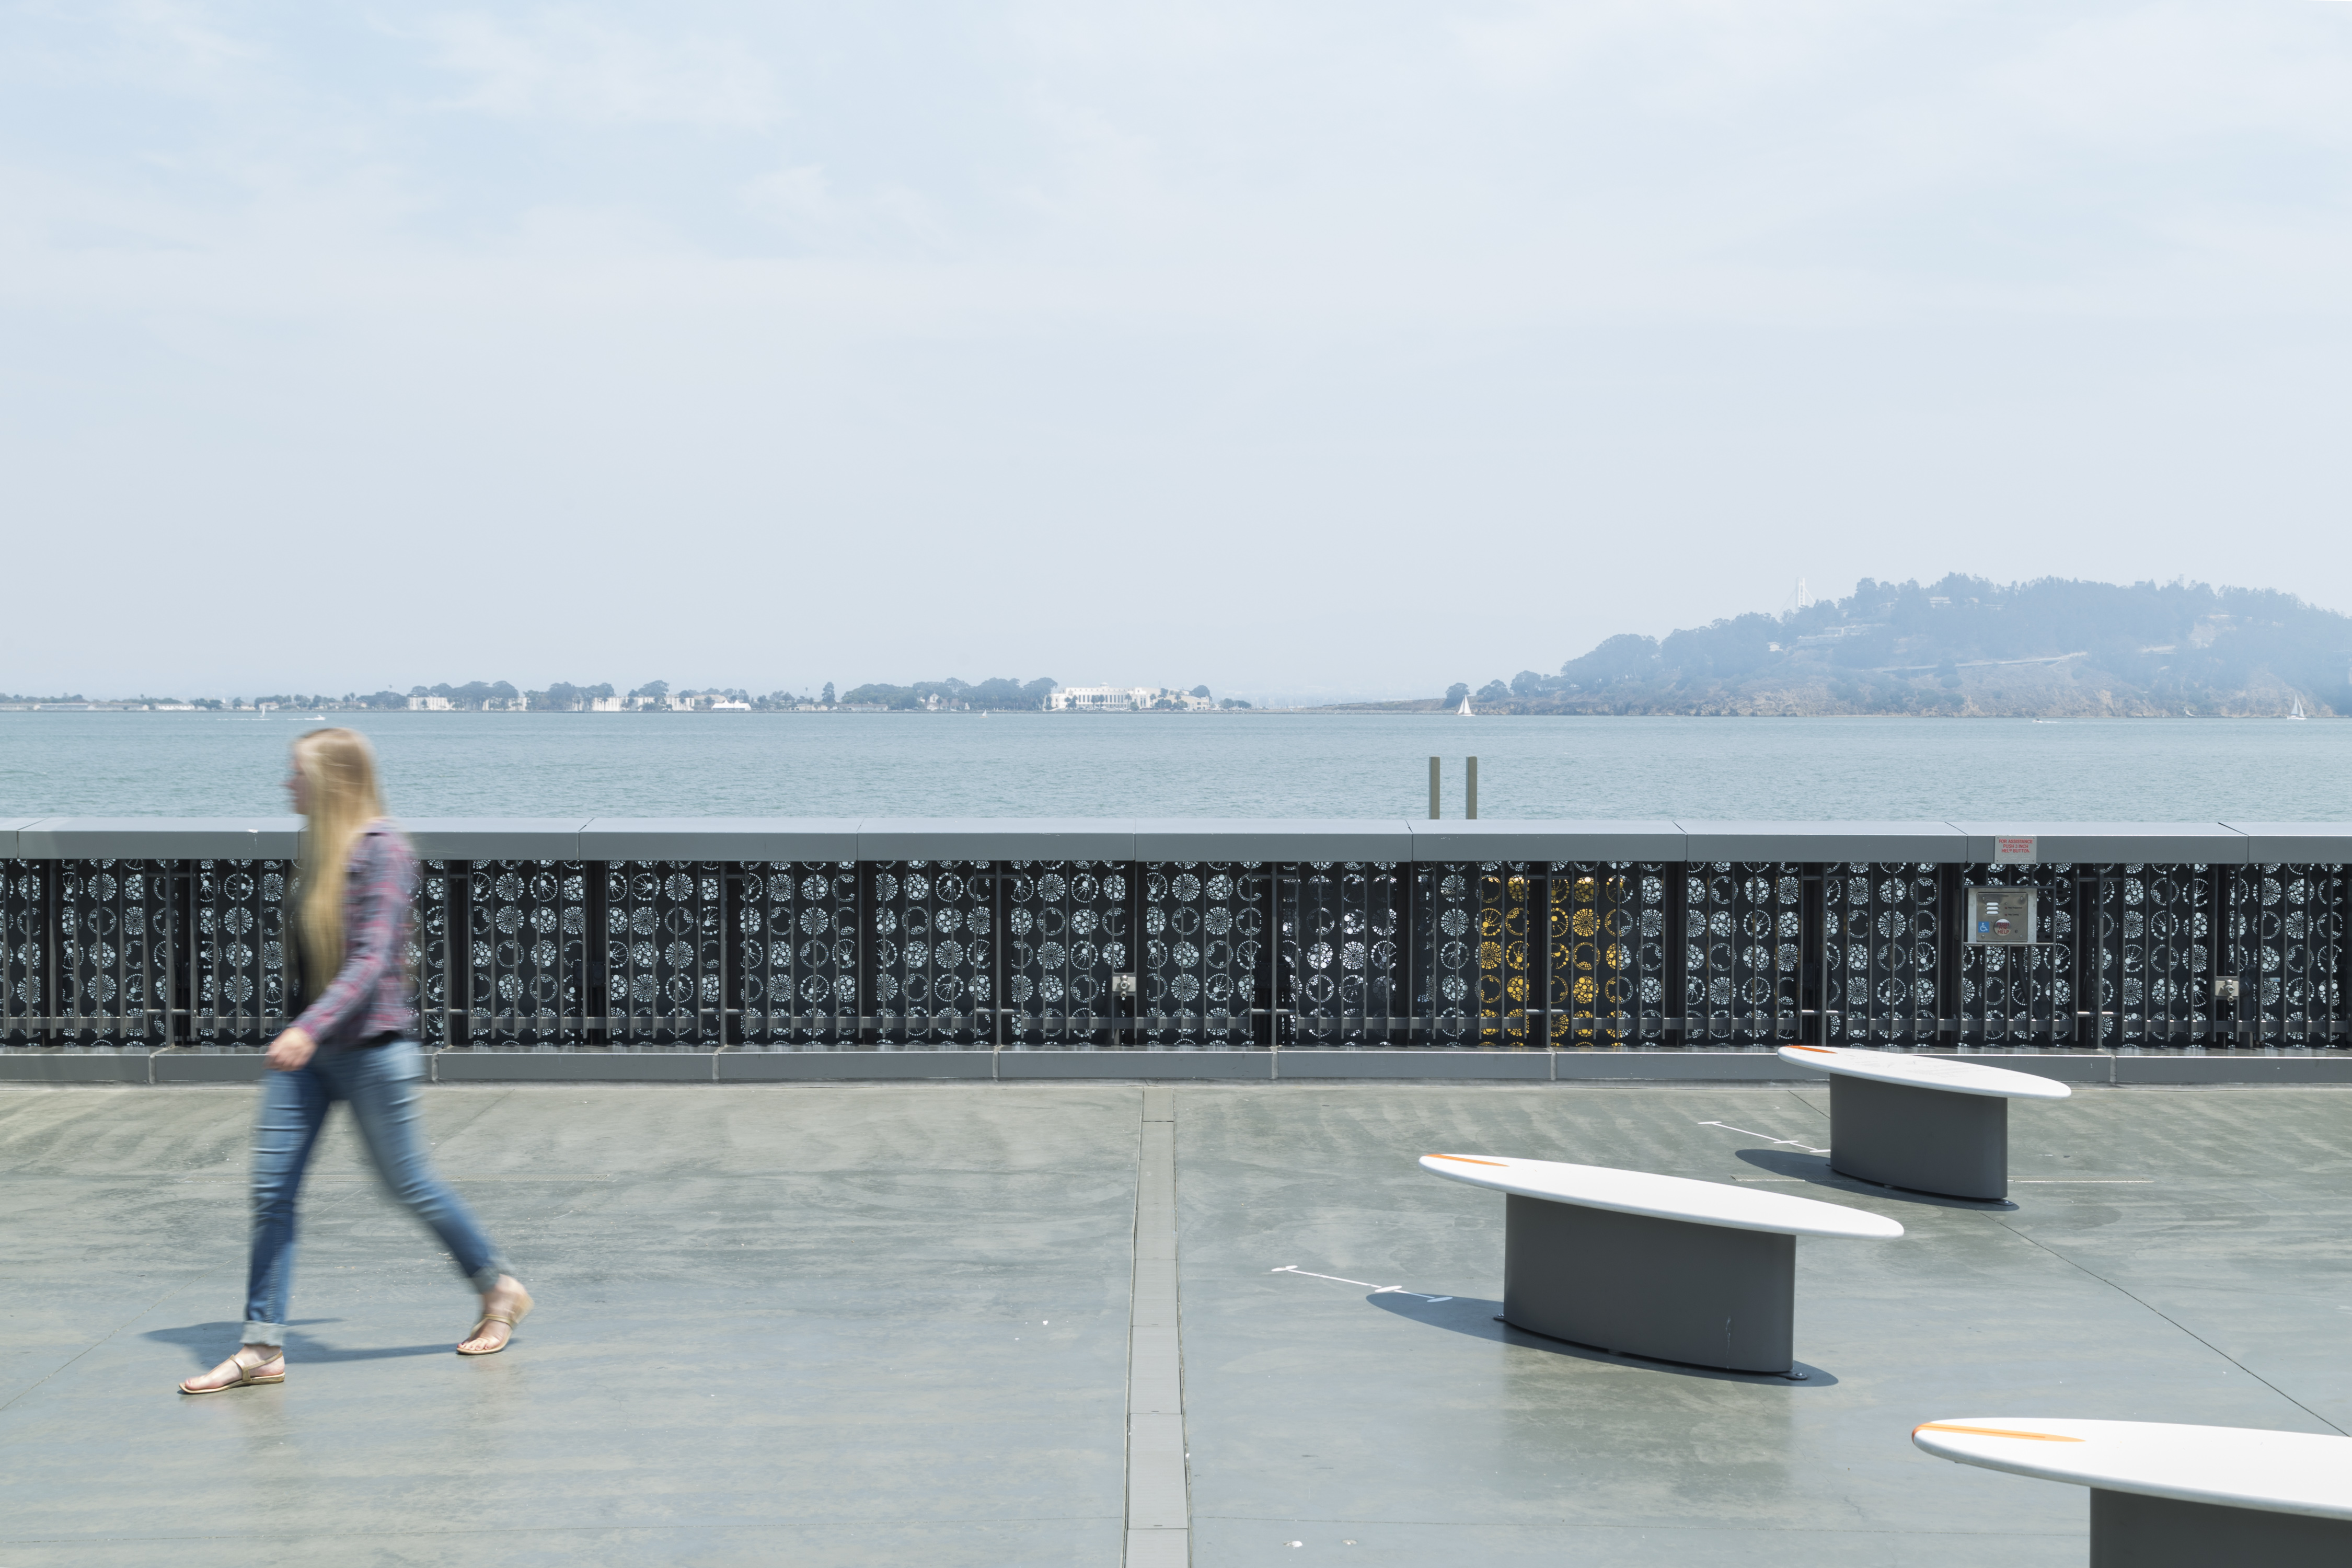 View of the Plankton Wall from the Bay Observation Terrace at the Exploratorium.